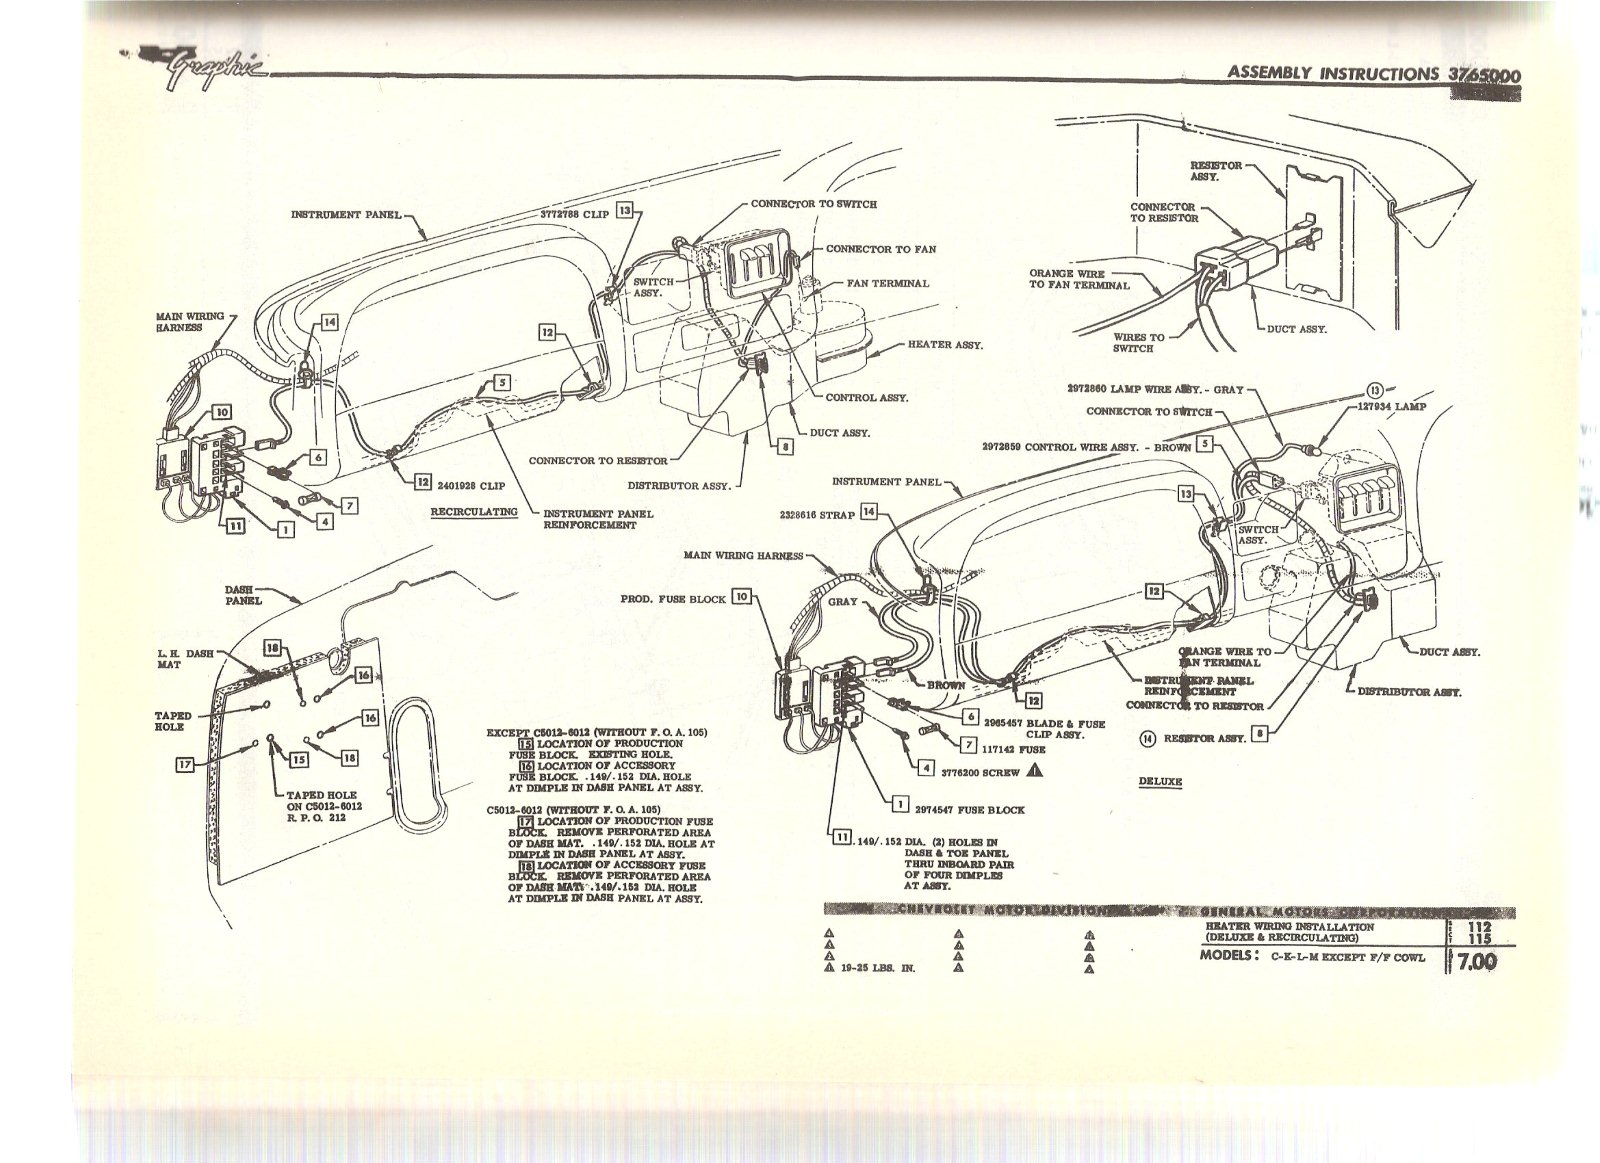 medium resolution of wiring diagram also likewise also further bus 53 color as well besides 1955 thunderbird g